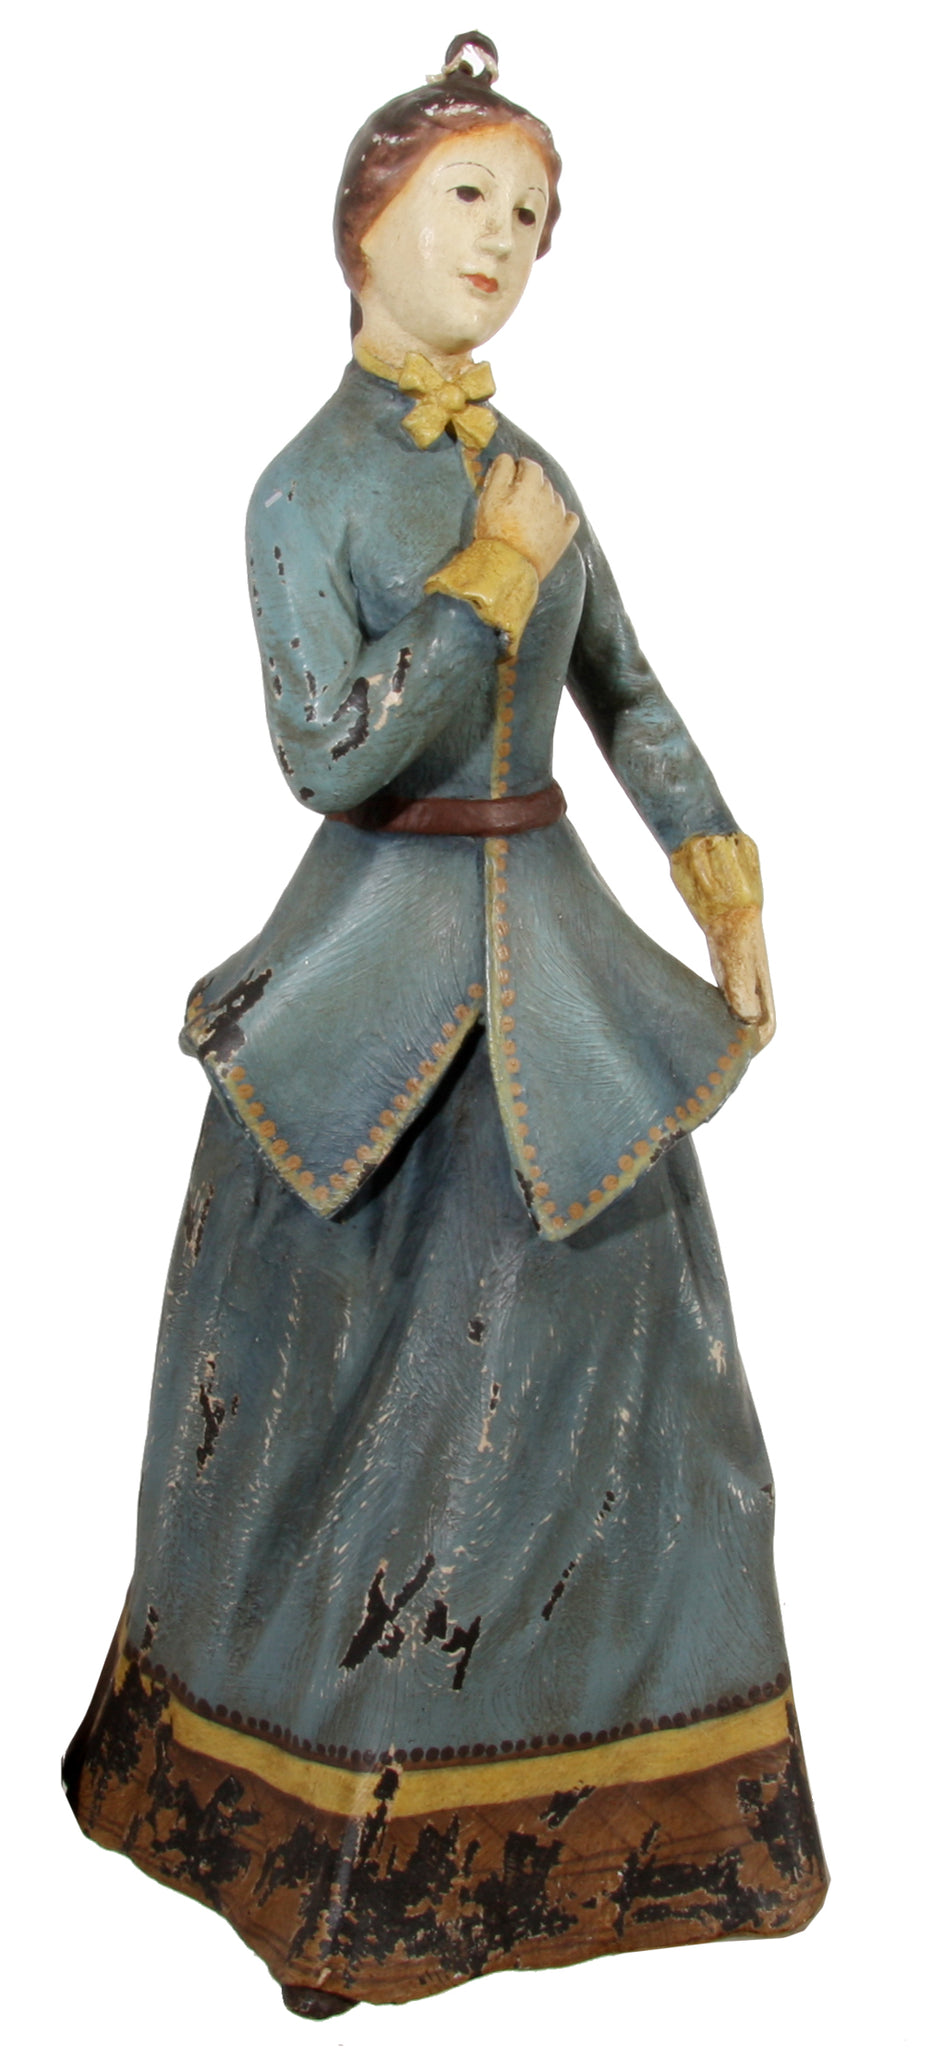 Blue Lady jule ornament